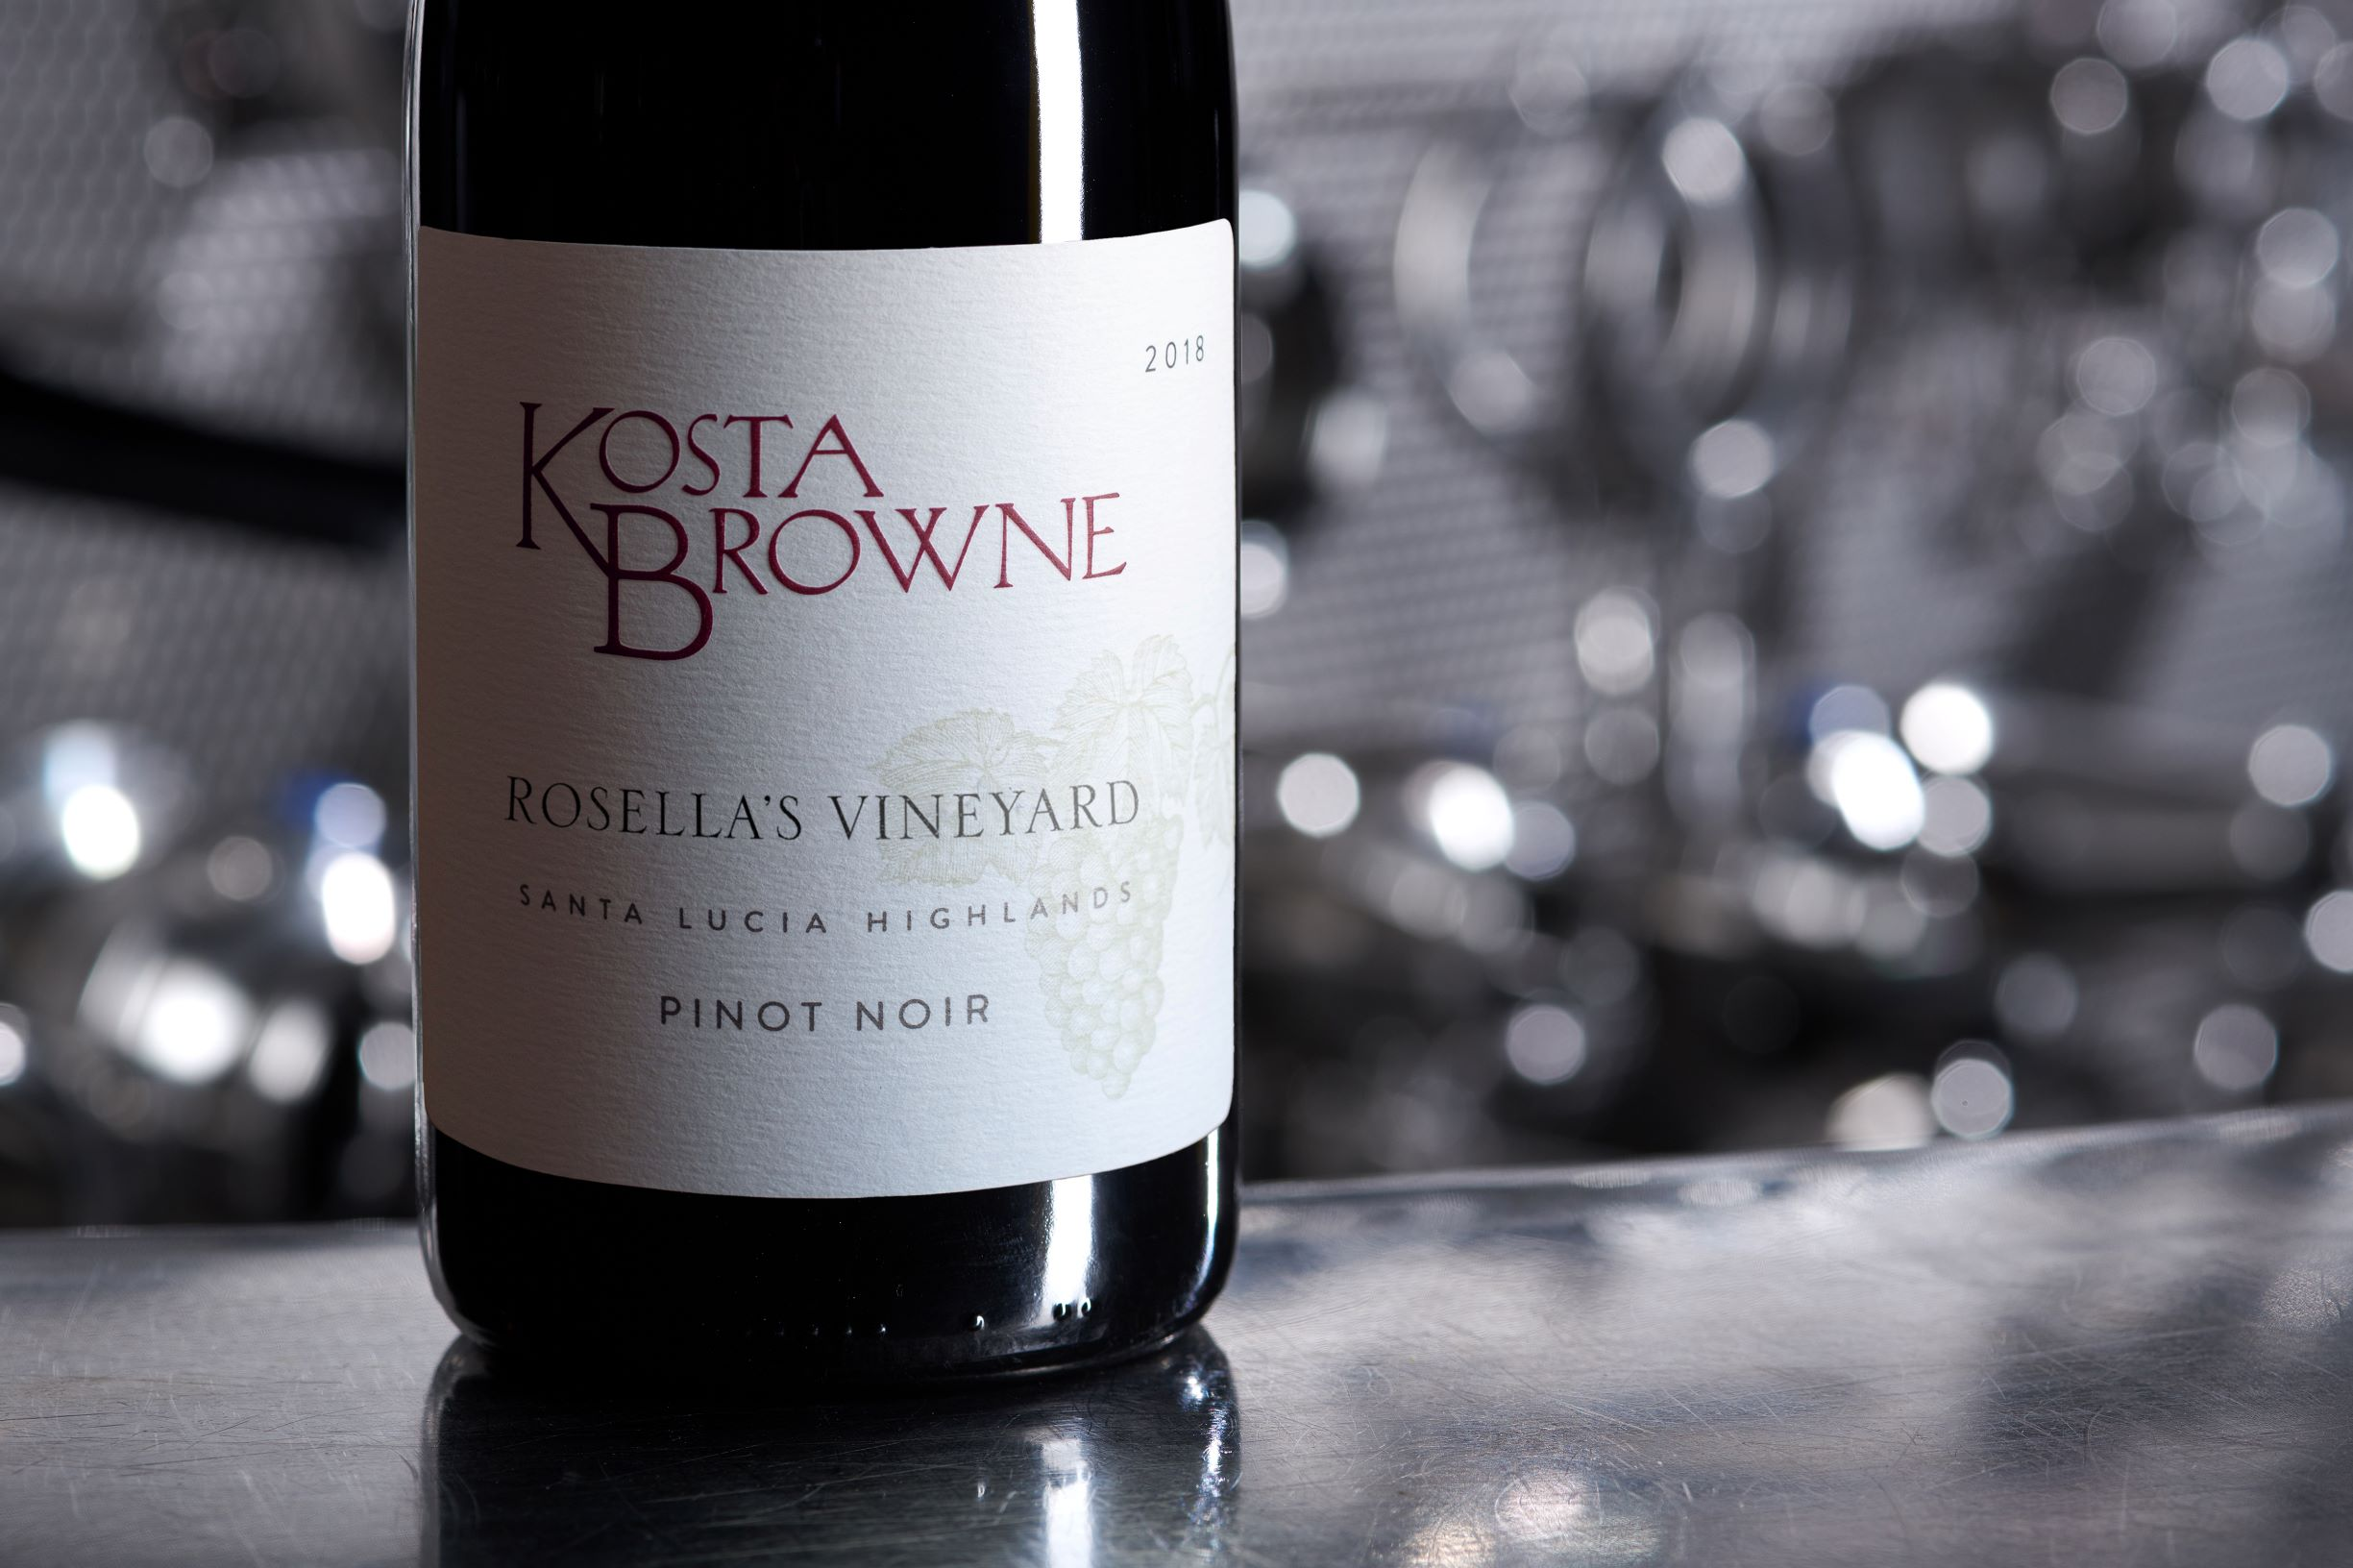 2018 Rosella's Vineyard Santa Lucia Highlands, Pinot Noir - Kosta Browne Winery